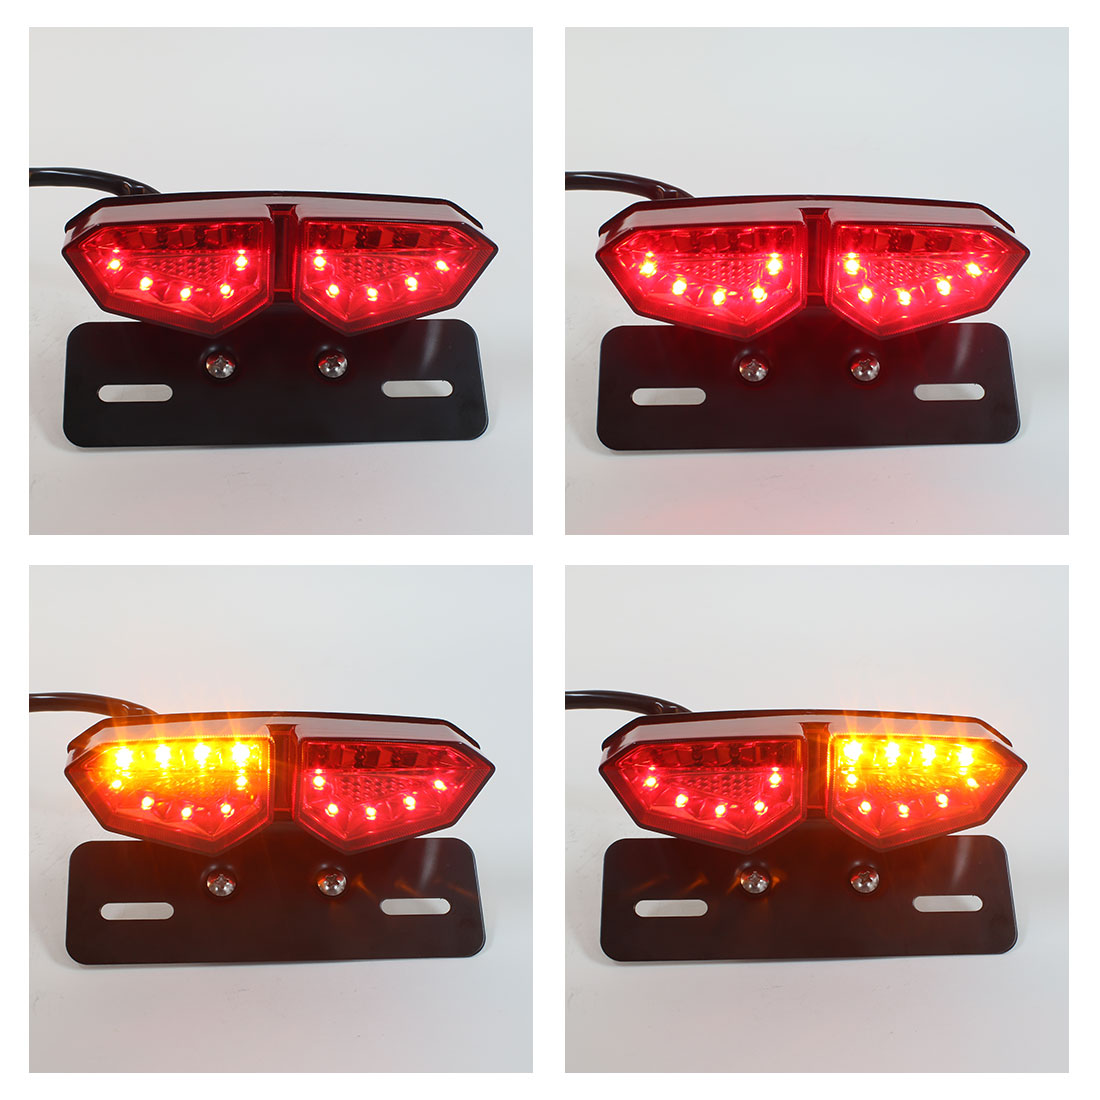 BOMPA Integrated LED Tail Brake Stop Turn Signal Light Smoke Lens with Red /& Amber Light License Plate Bracket fit Most Motorcycles and Bikes